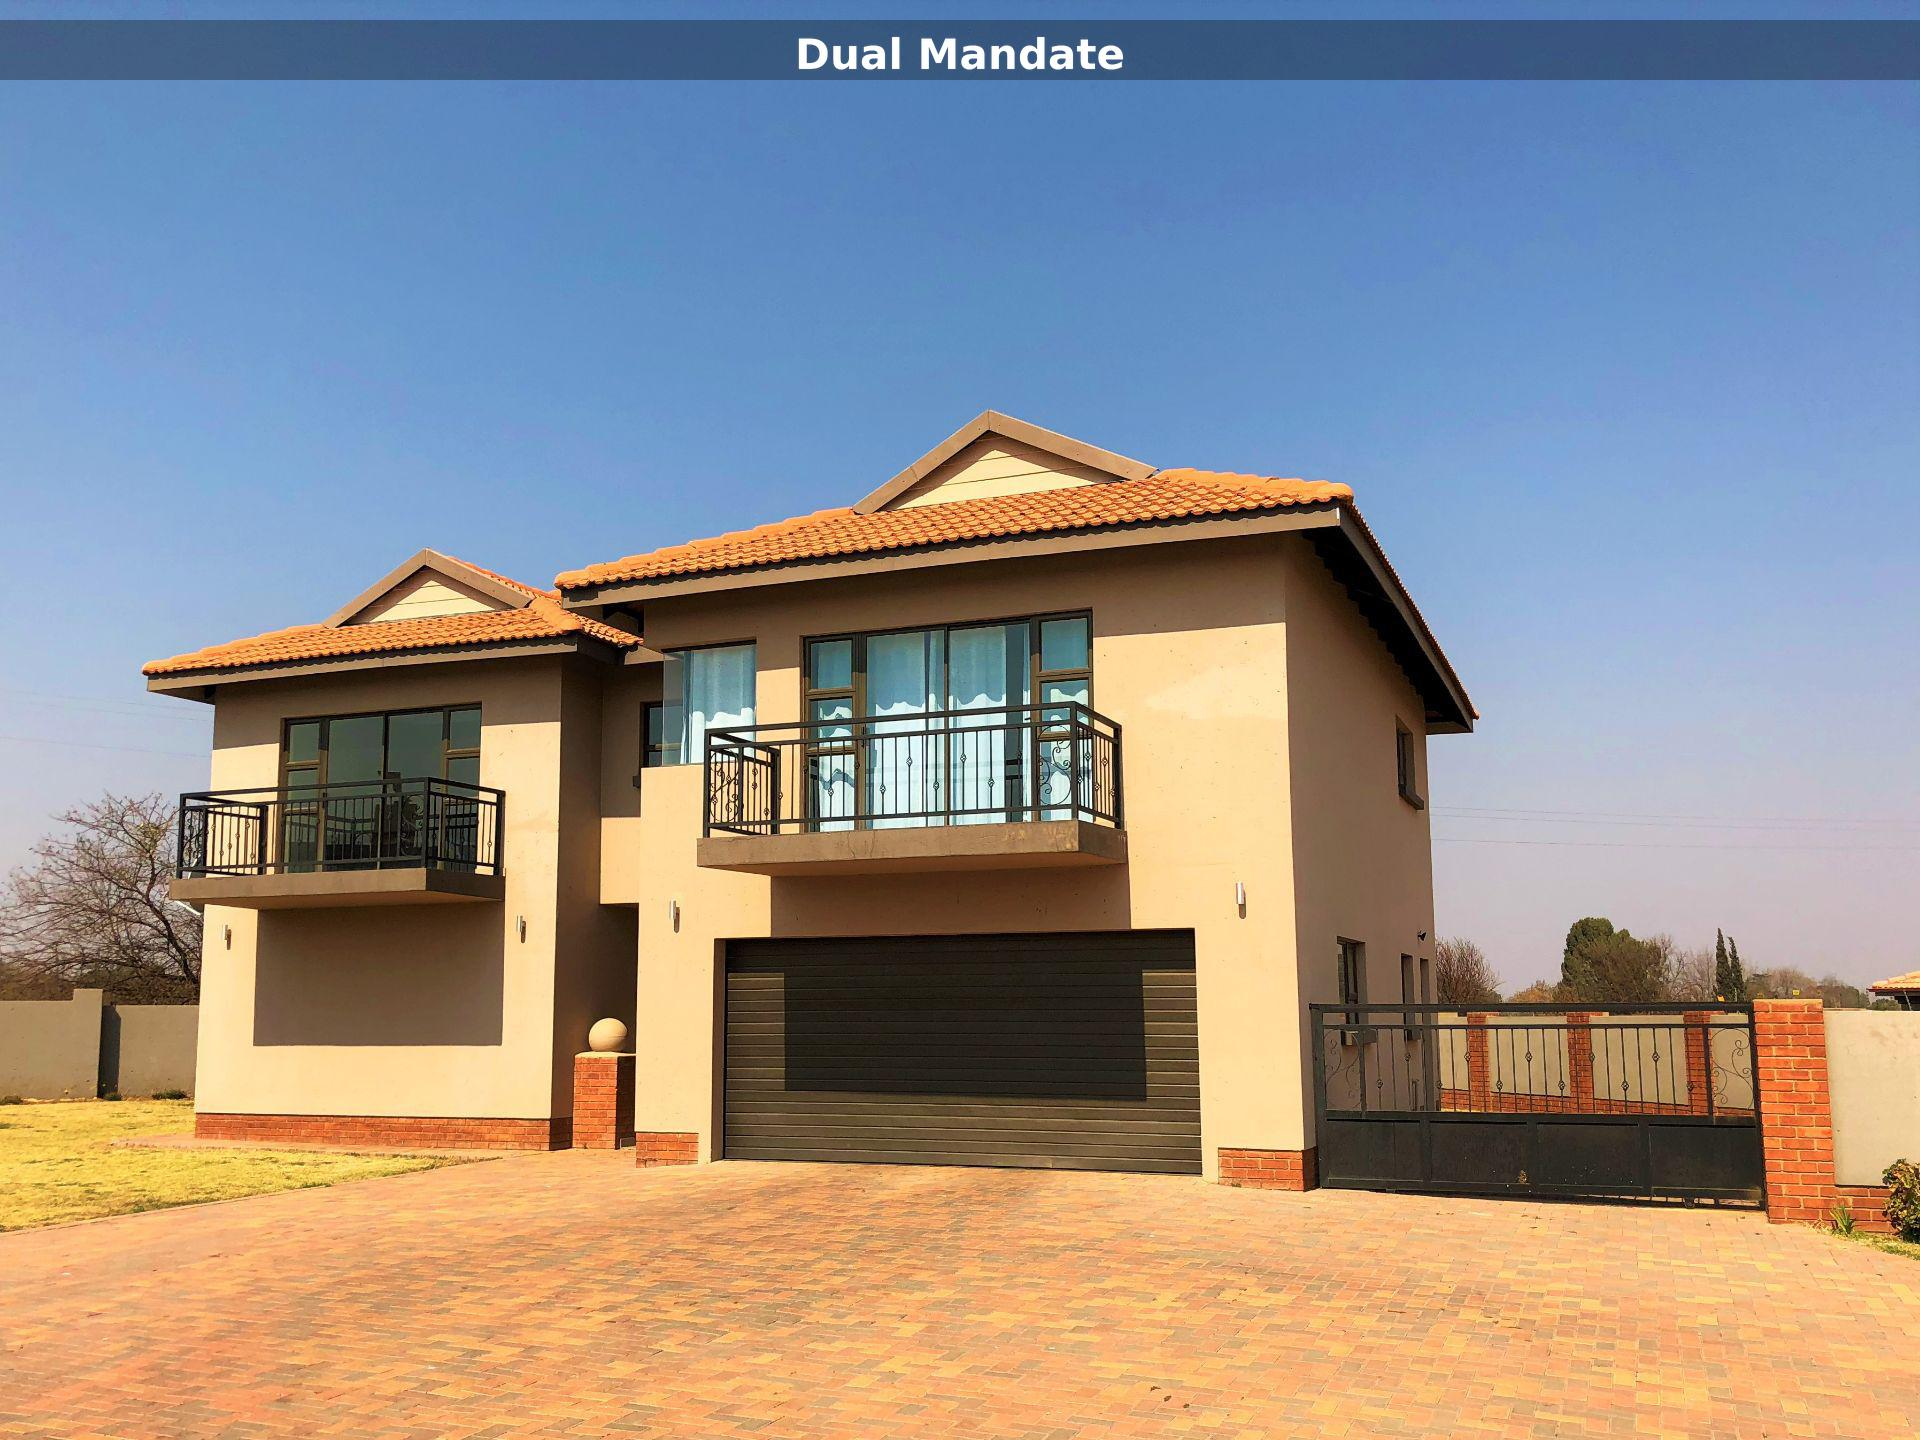 House in Lifestyle Estate - Main image.jpg